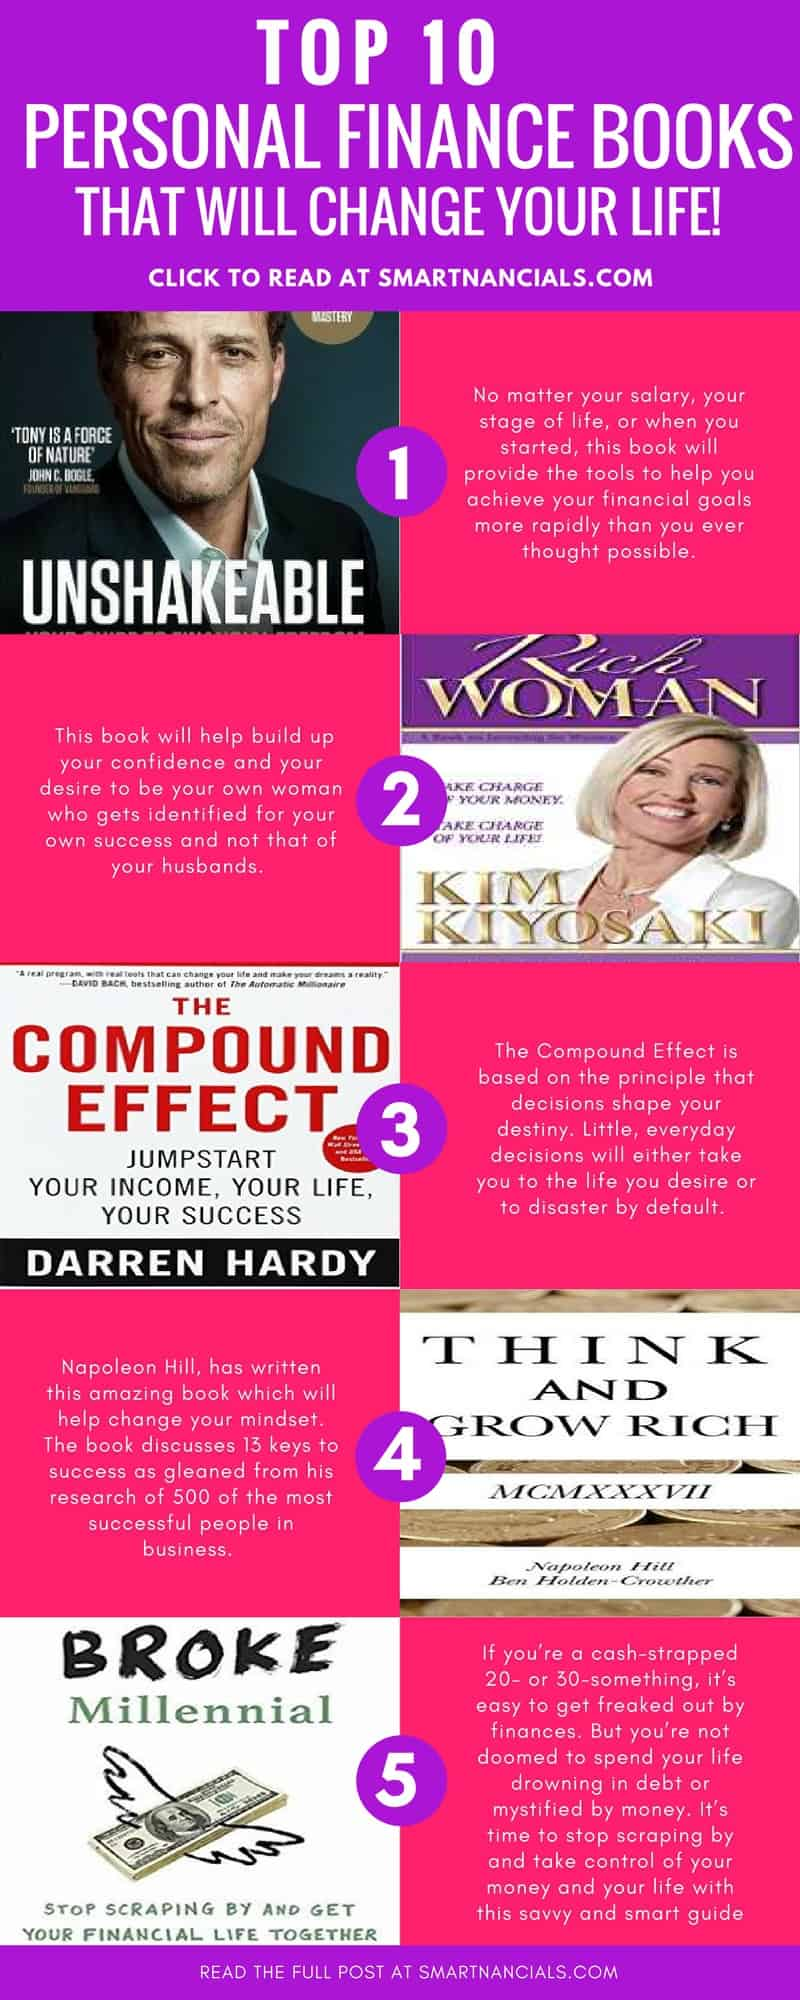 The top 10 personal finance books that can help revolutionize the way you think about money. Thes books are awesome for people who want to save money, make more money, start business or just change their money mindset. Click to read more...